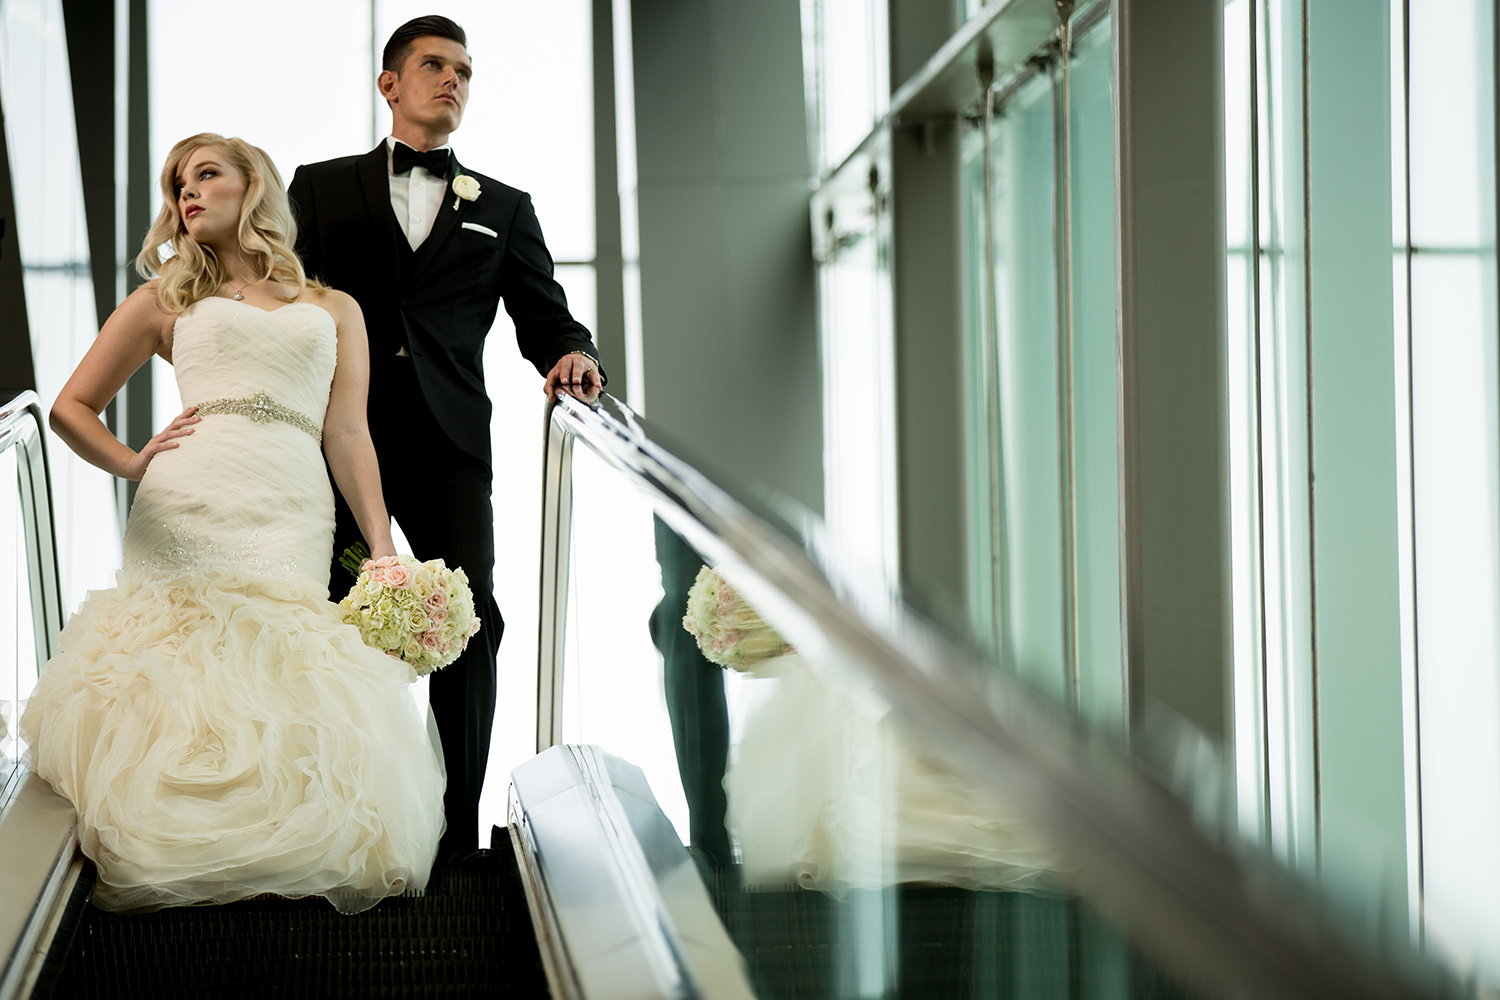 bride-groom-escalator.jpg